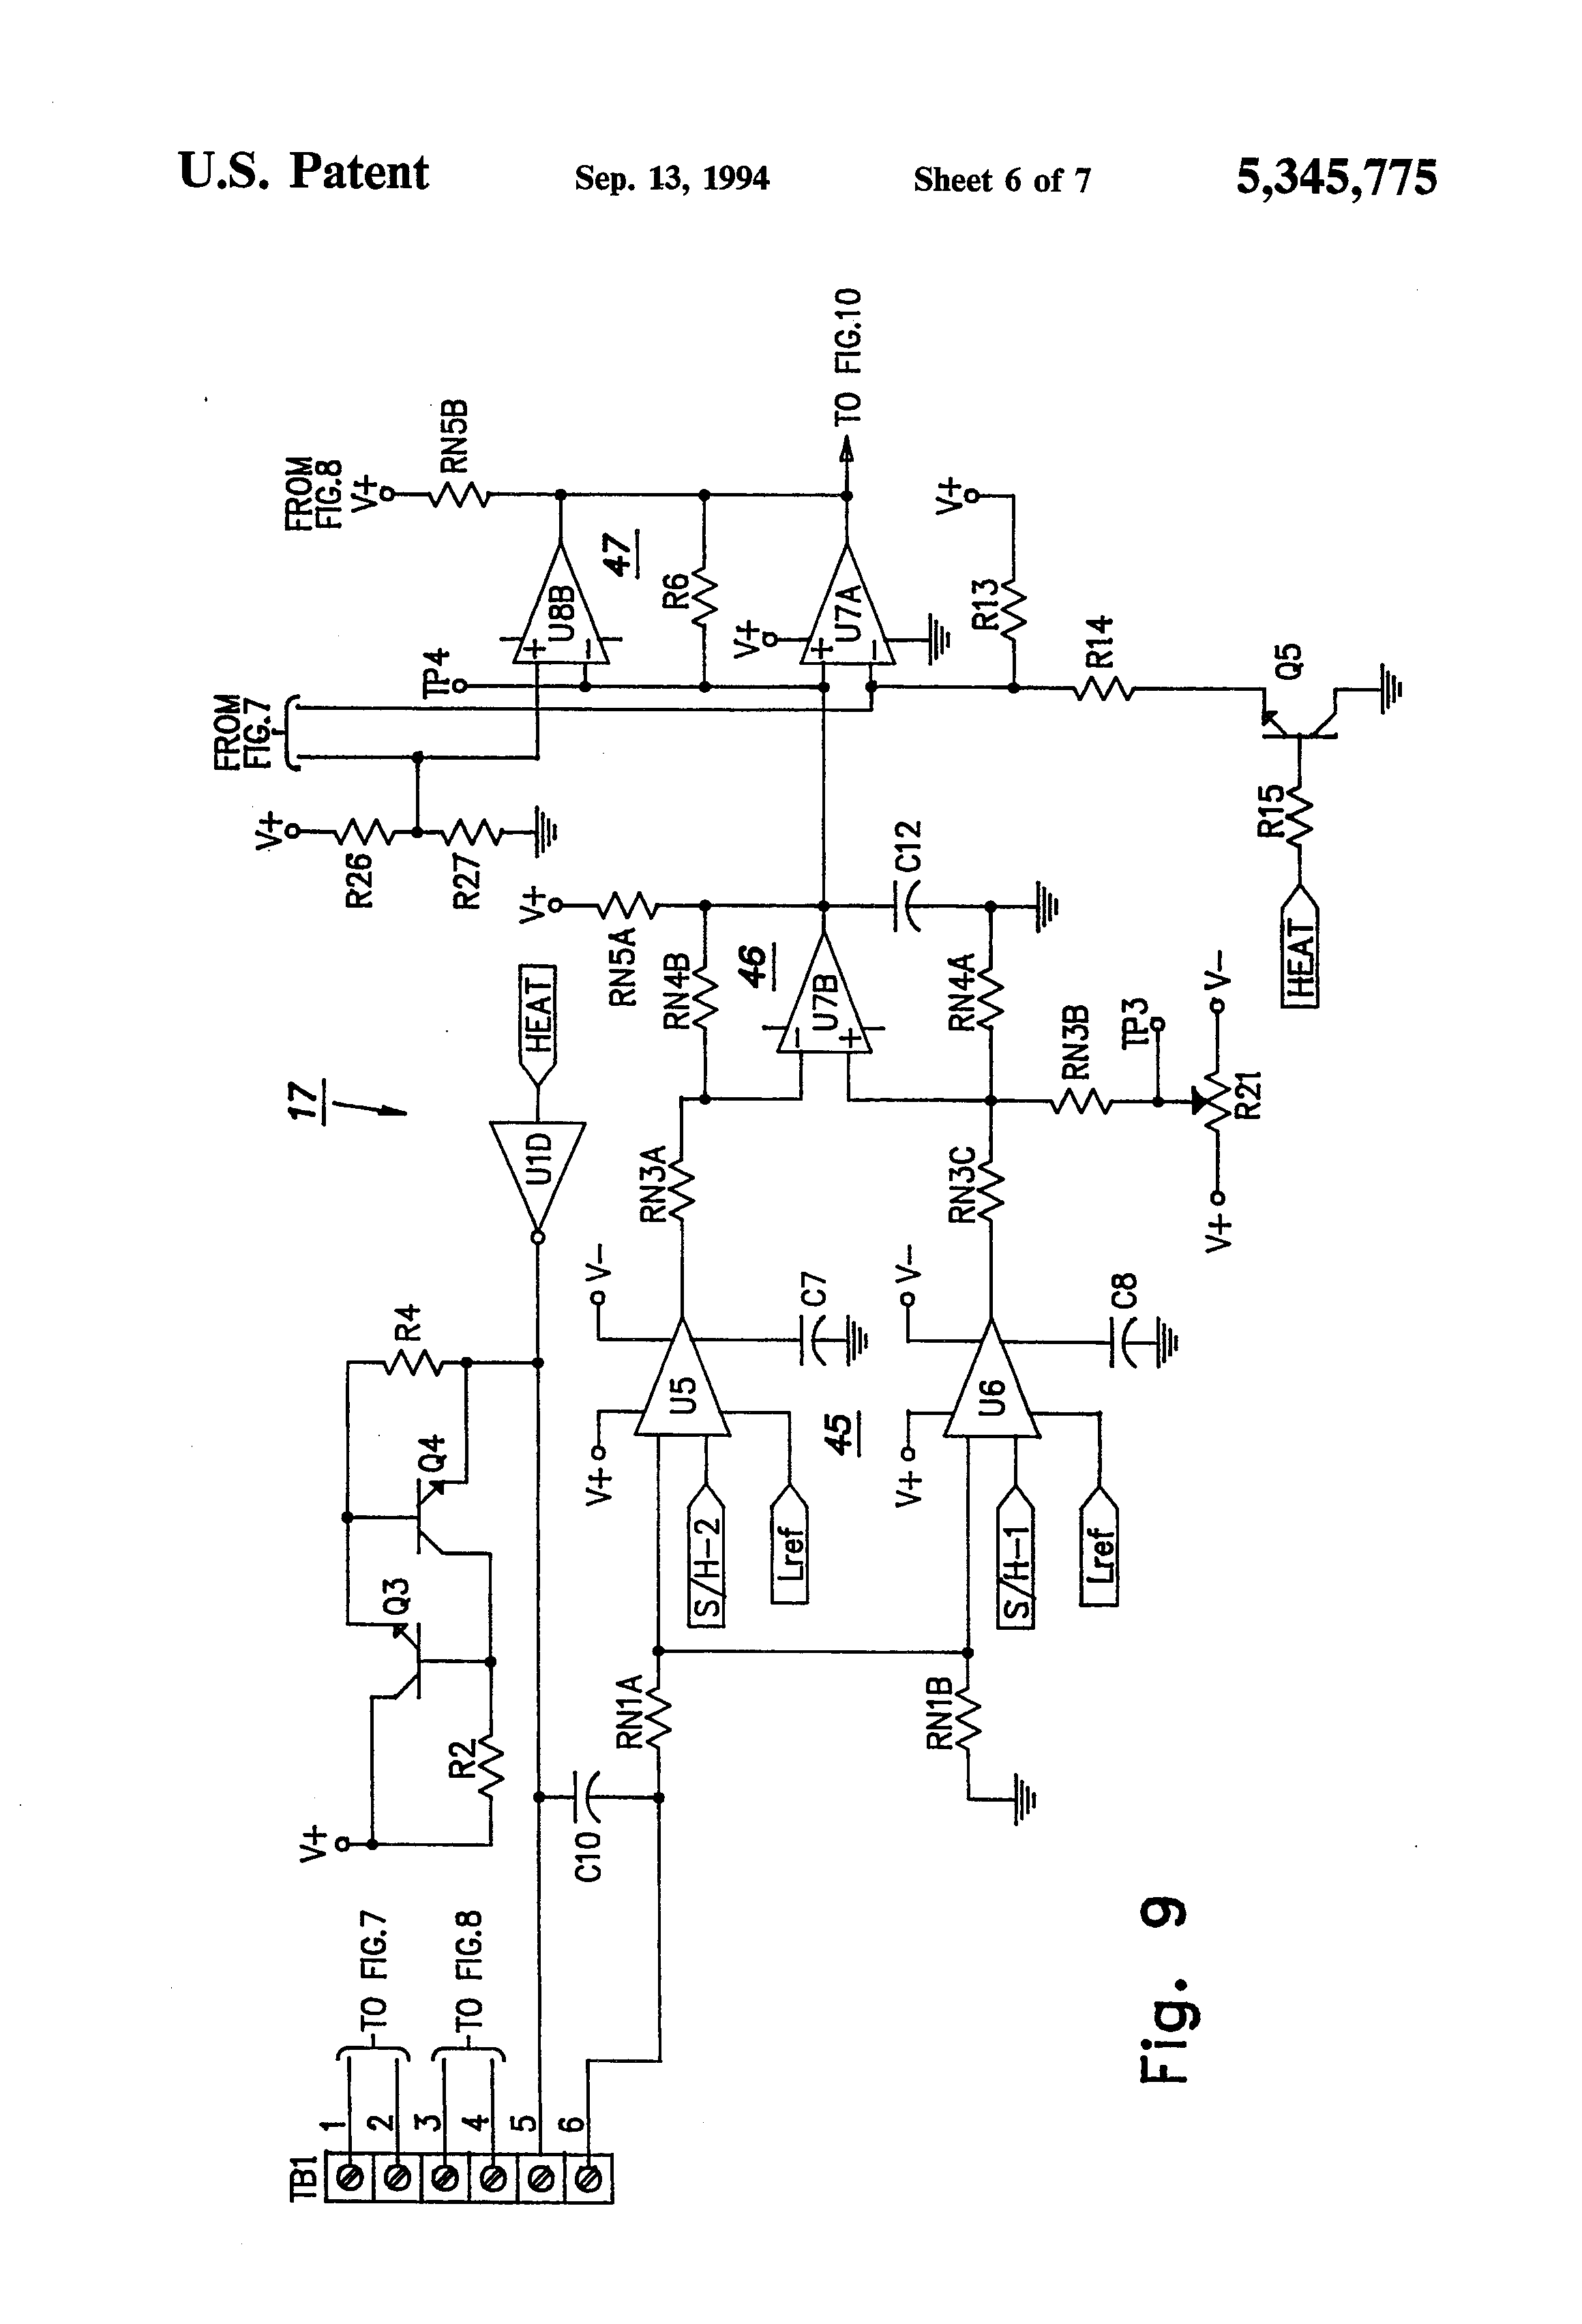 wiring diagram of refrigeration system fender stratocaster deluxe hss patent us5345775 detection assembly